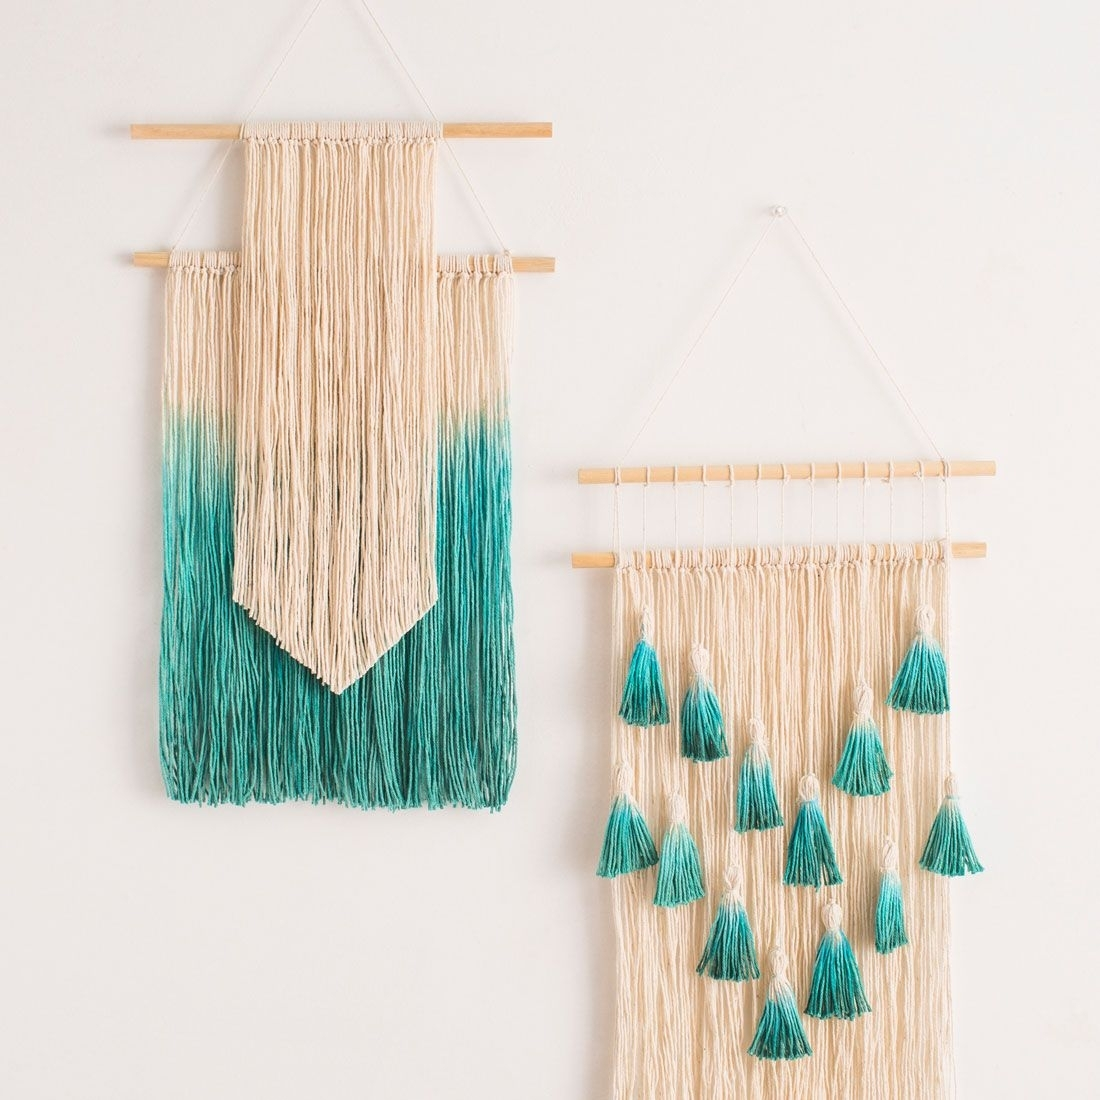 9 Diys For Your College Apartment | Diy Wall Art, Diy Wall And In Most Current Round Fabric Wall Art (Gallery 15 of 15)